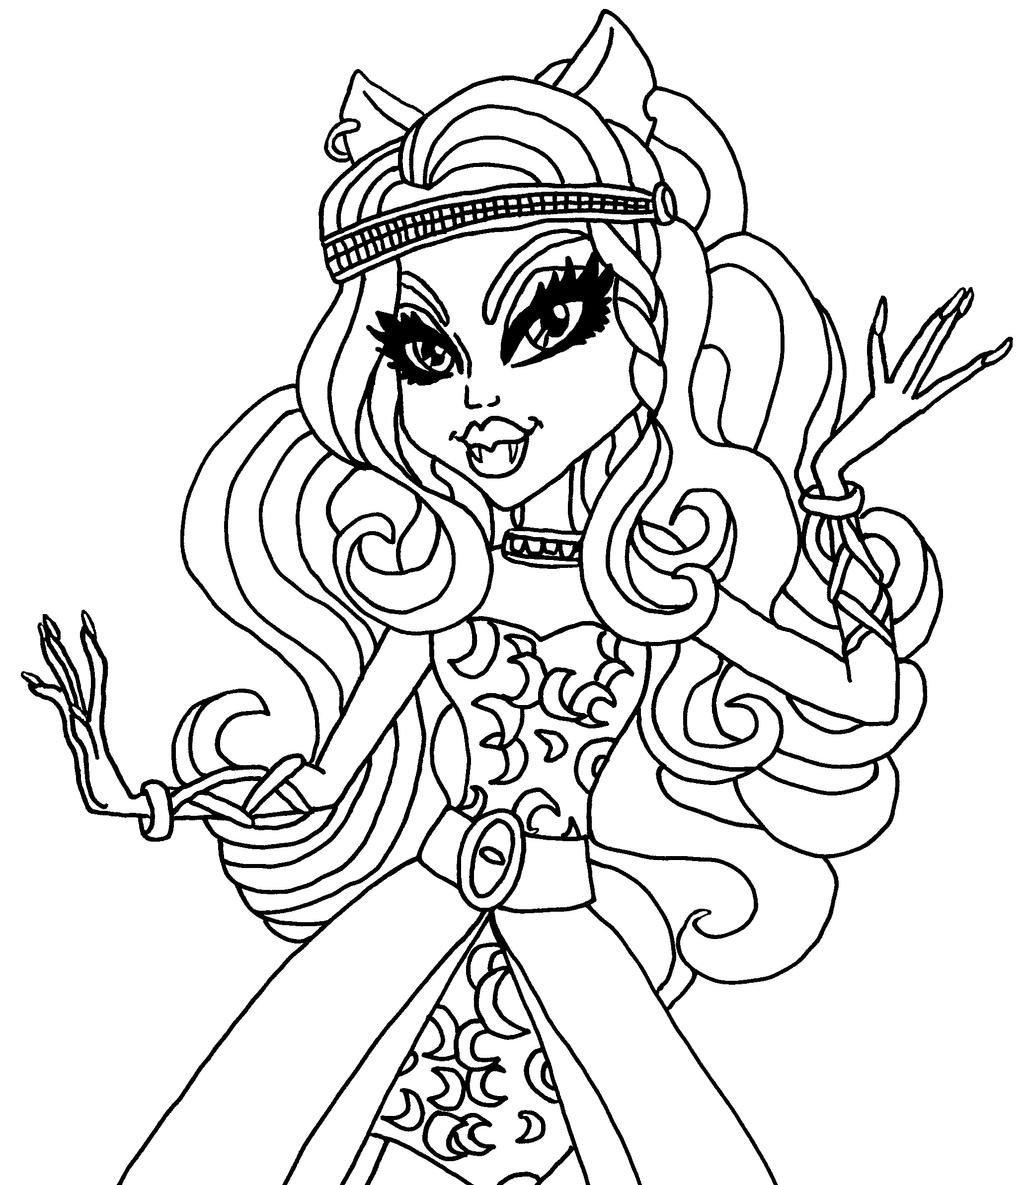 Clawdeen Wolf By Elfkena On Deviantart High Coloring Pages Clawdeen Wolf